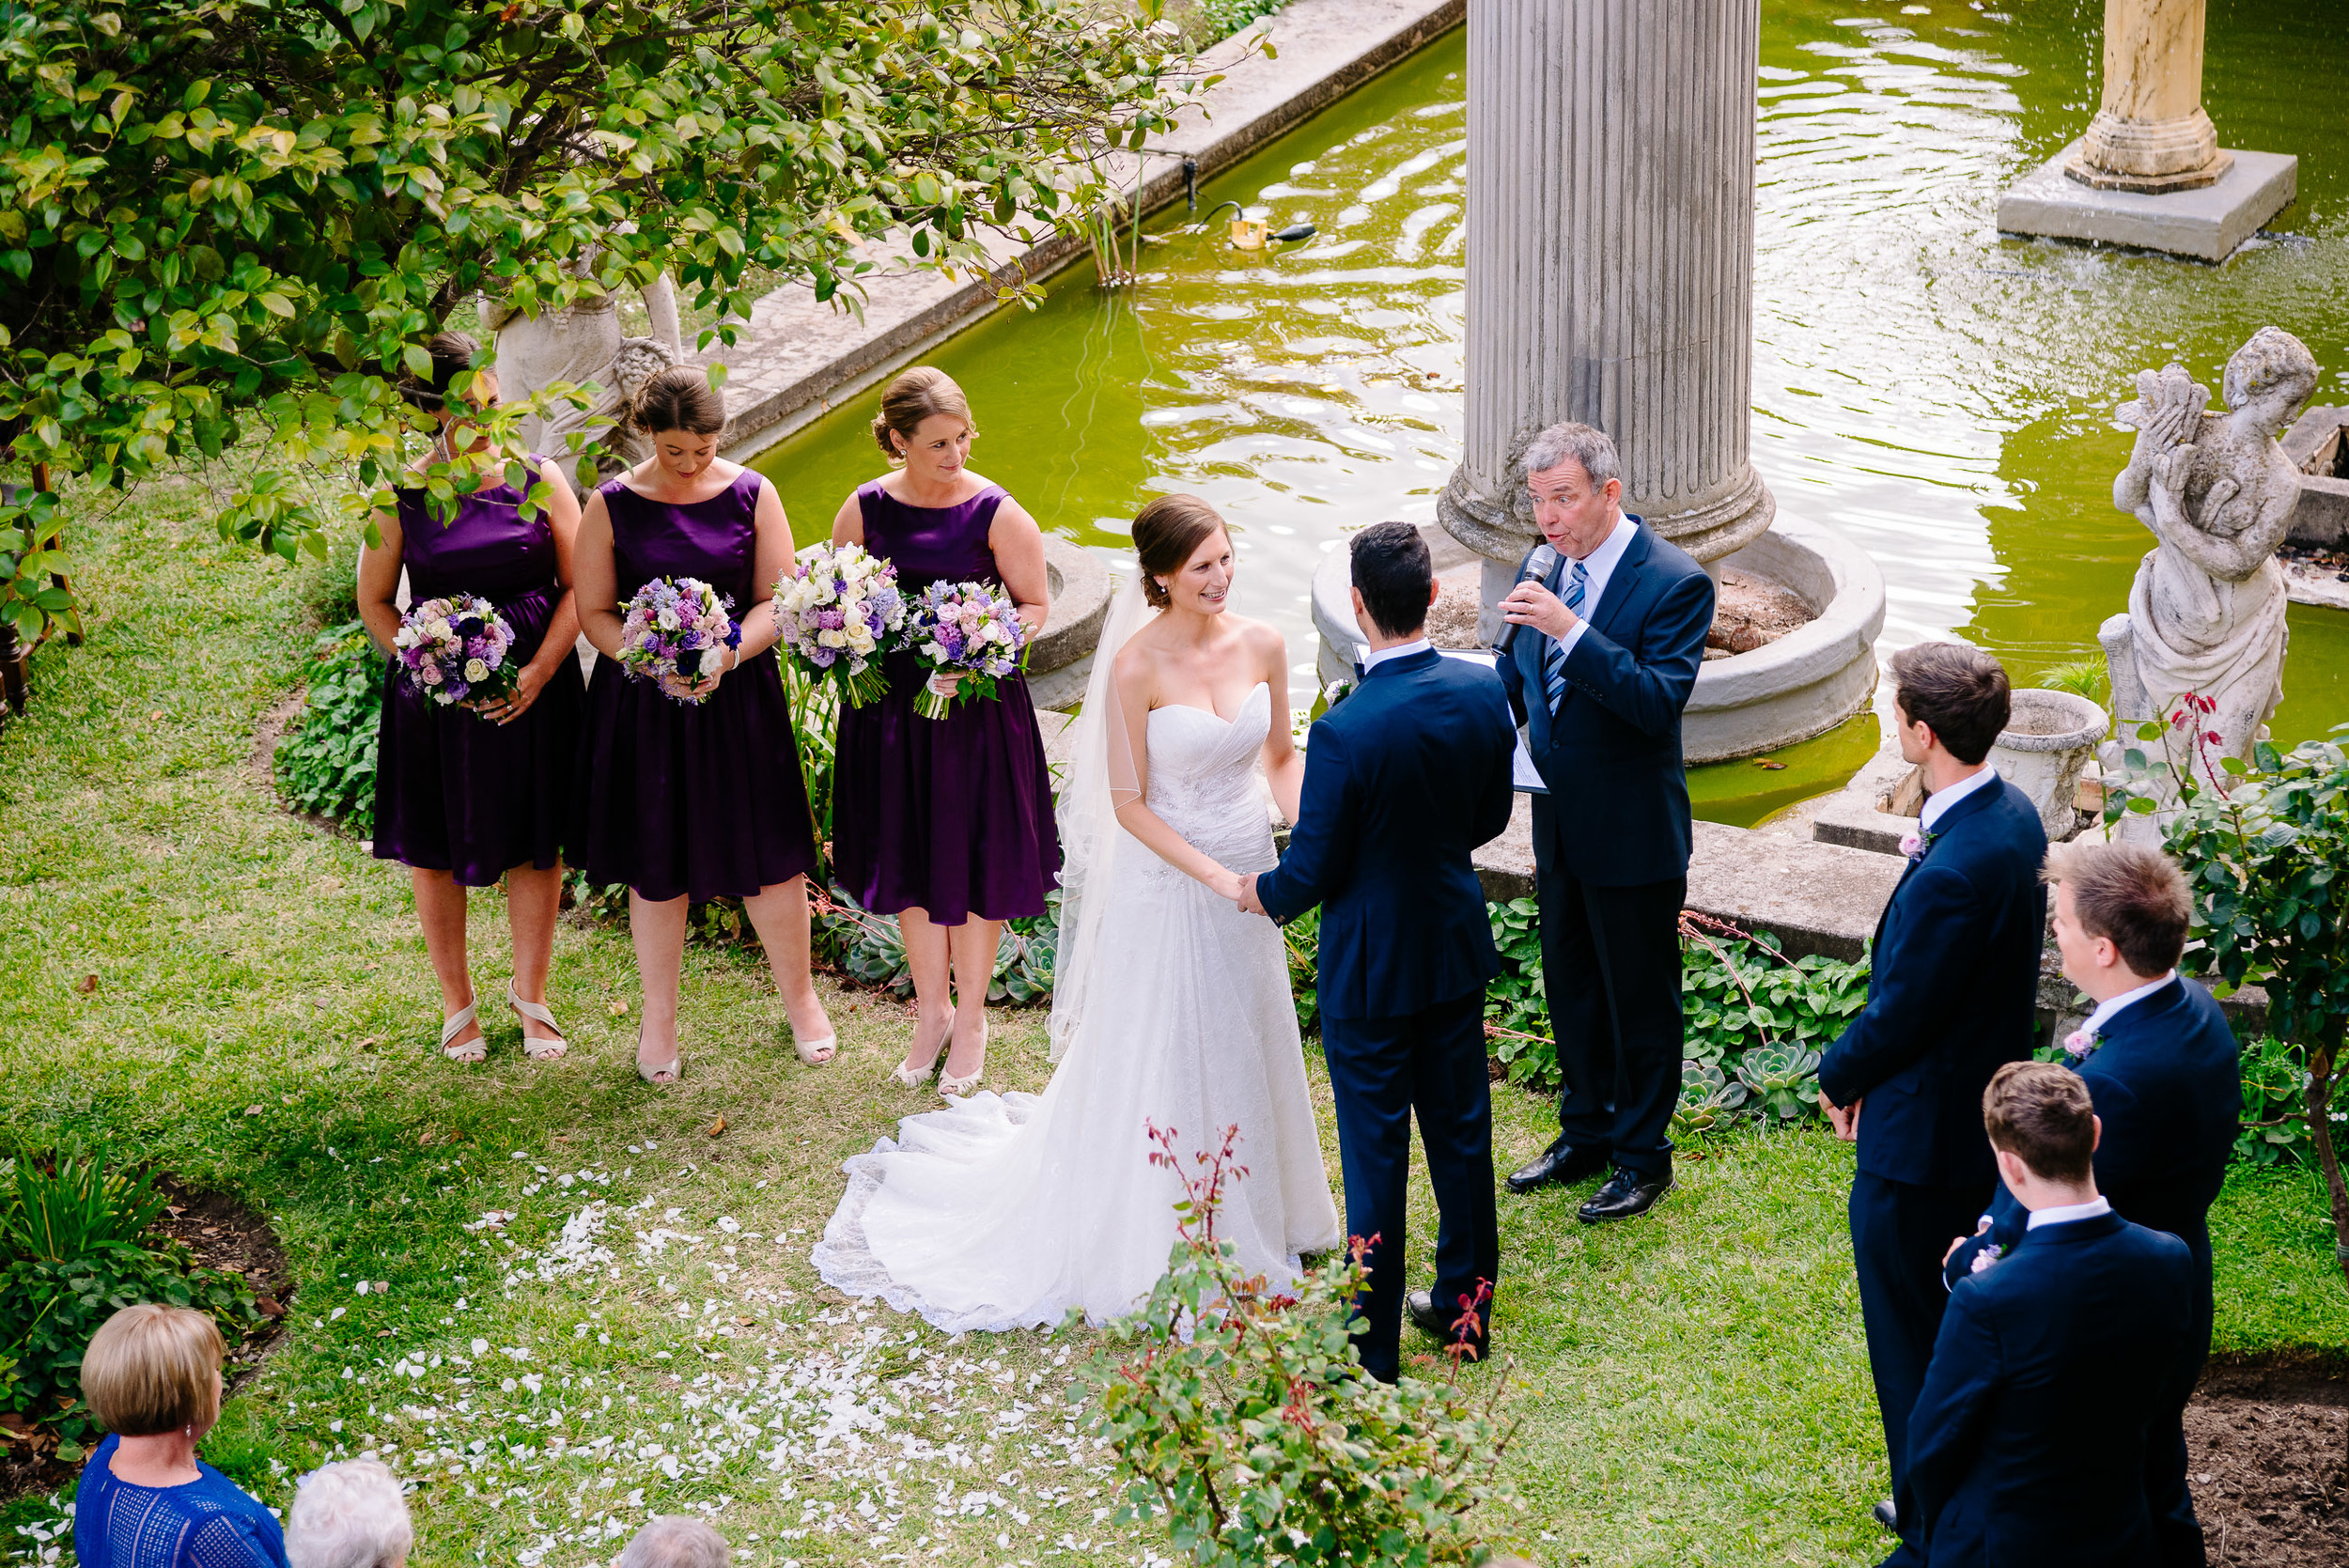 Fortuna Villa Garden Wedding